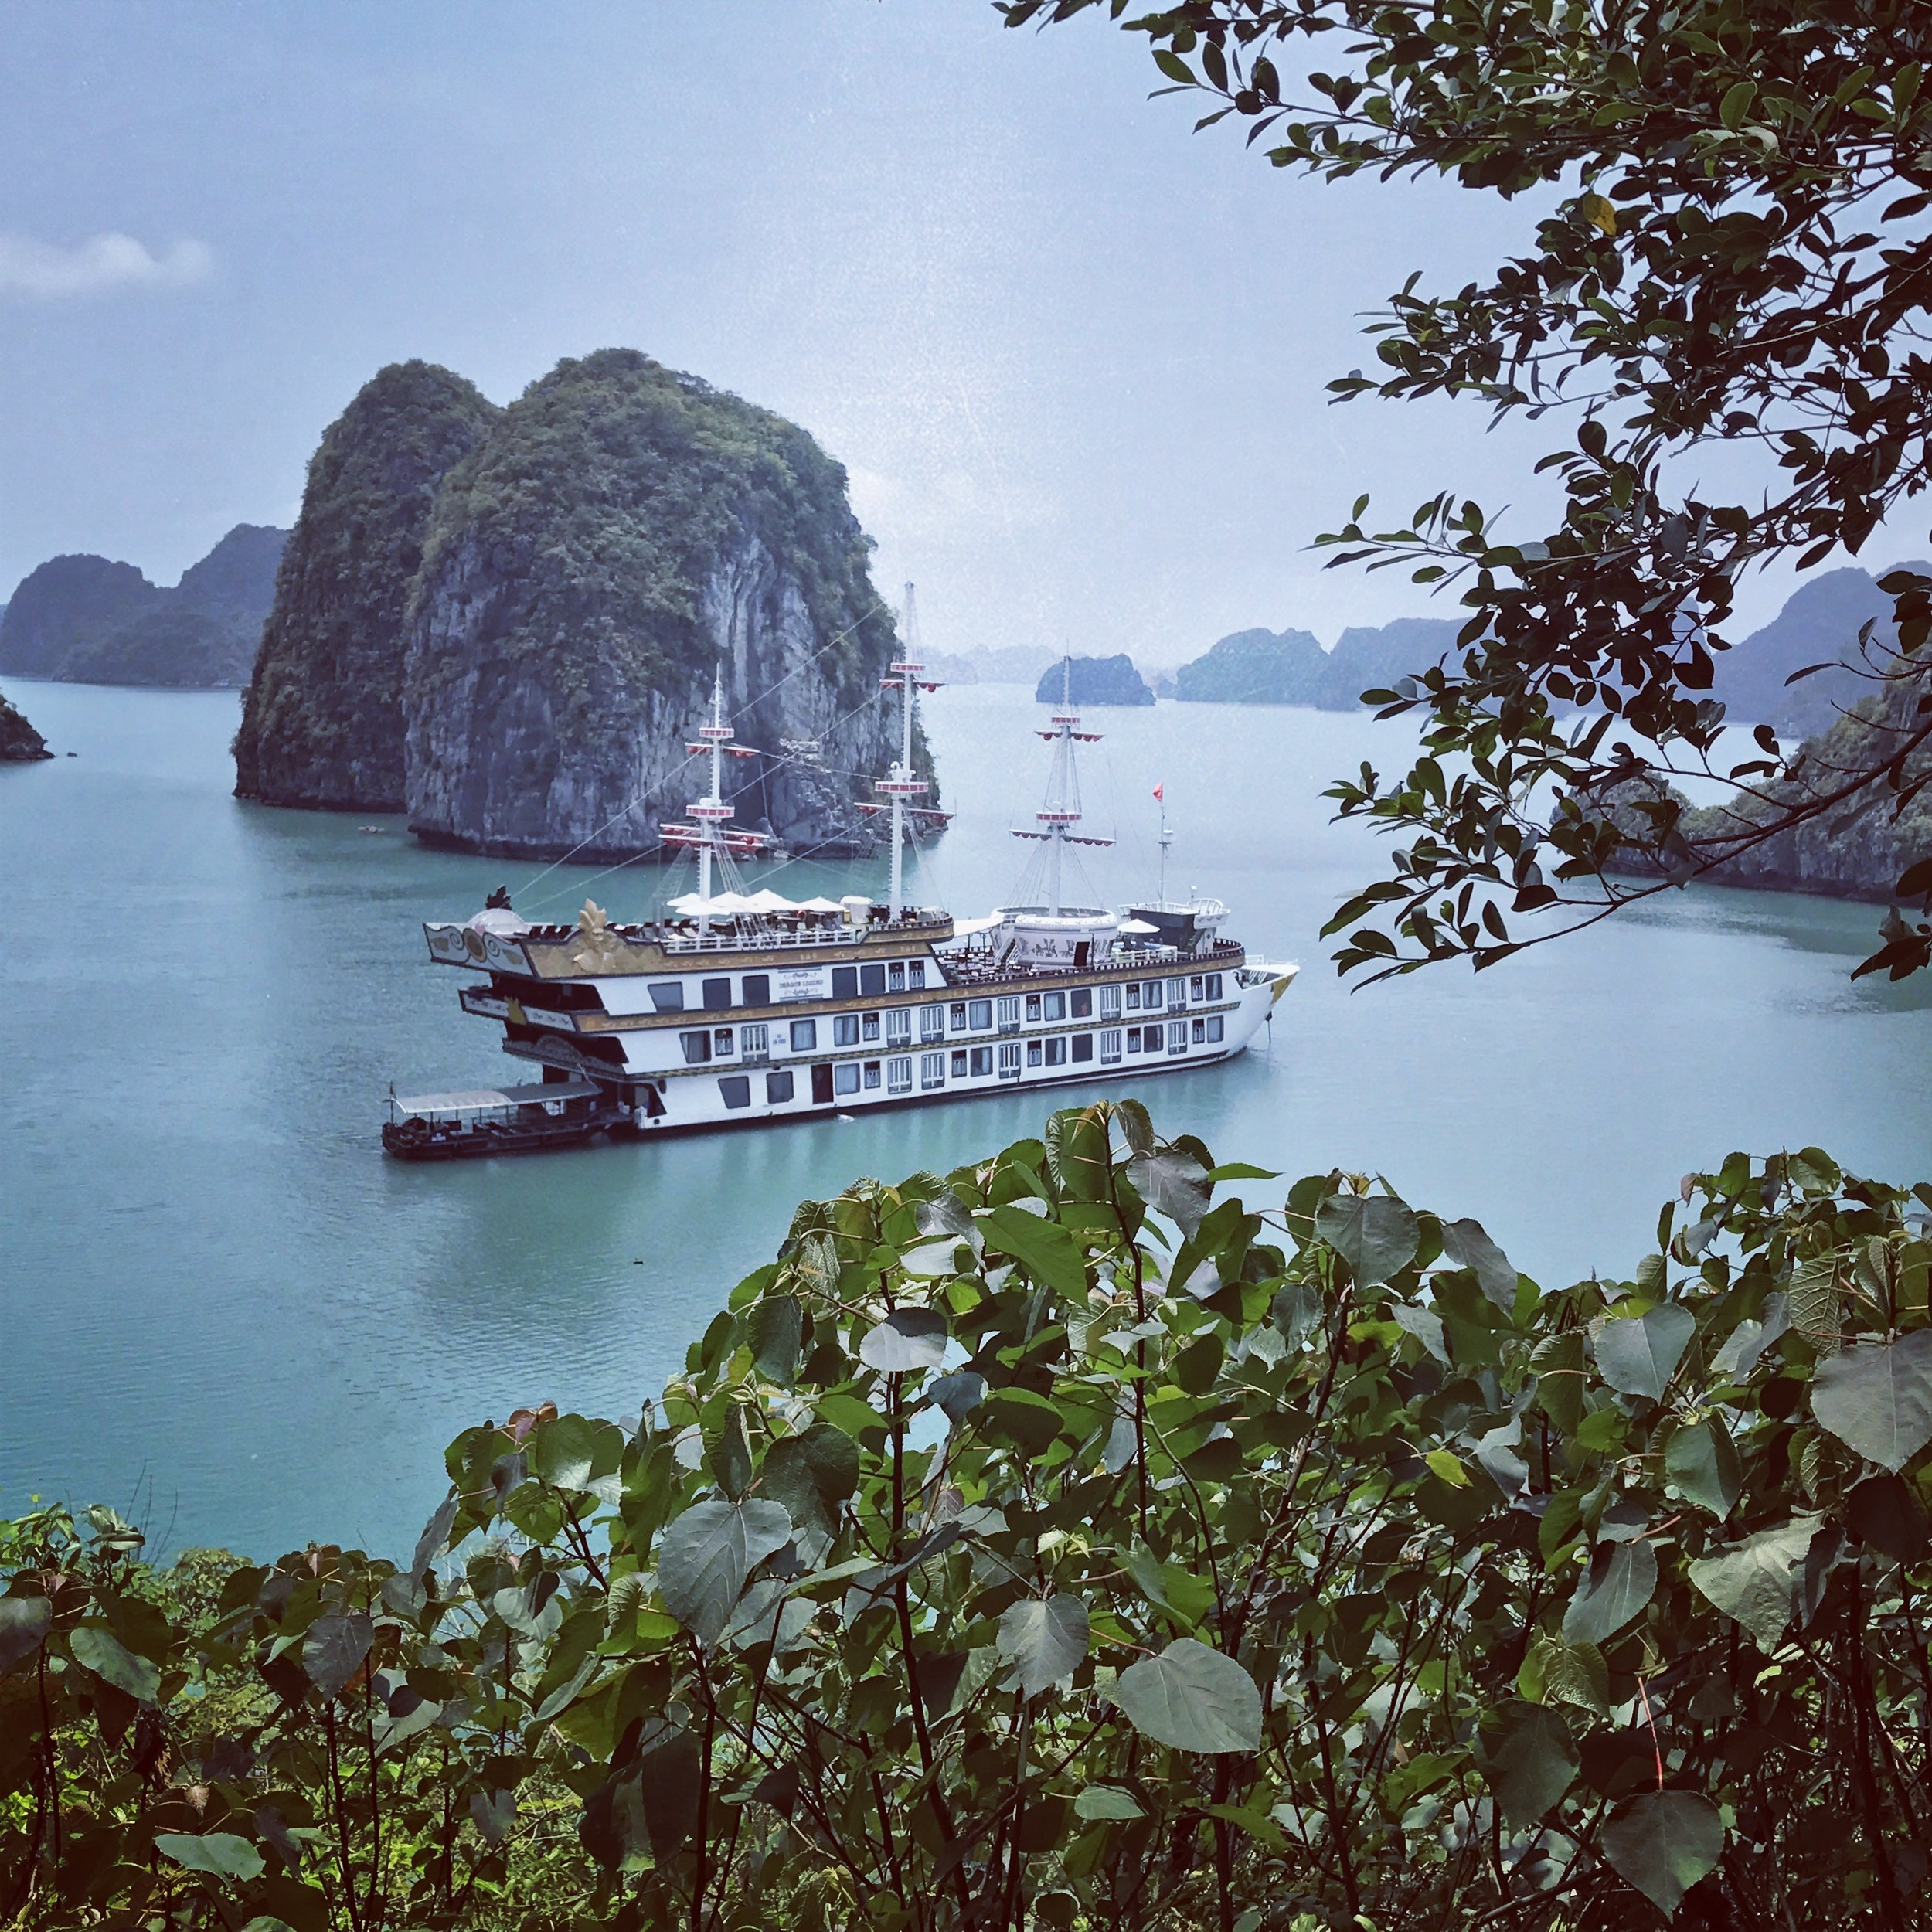 View of our boat in Halong Bay